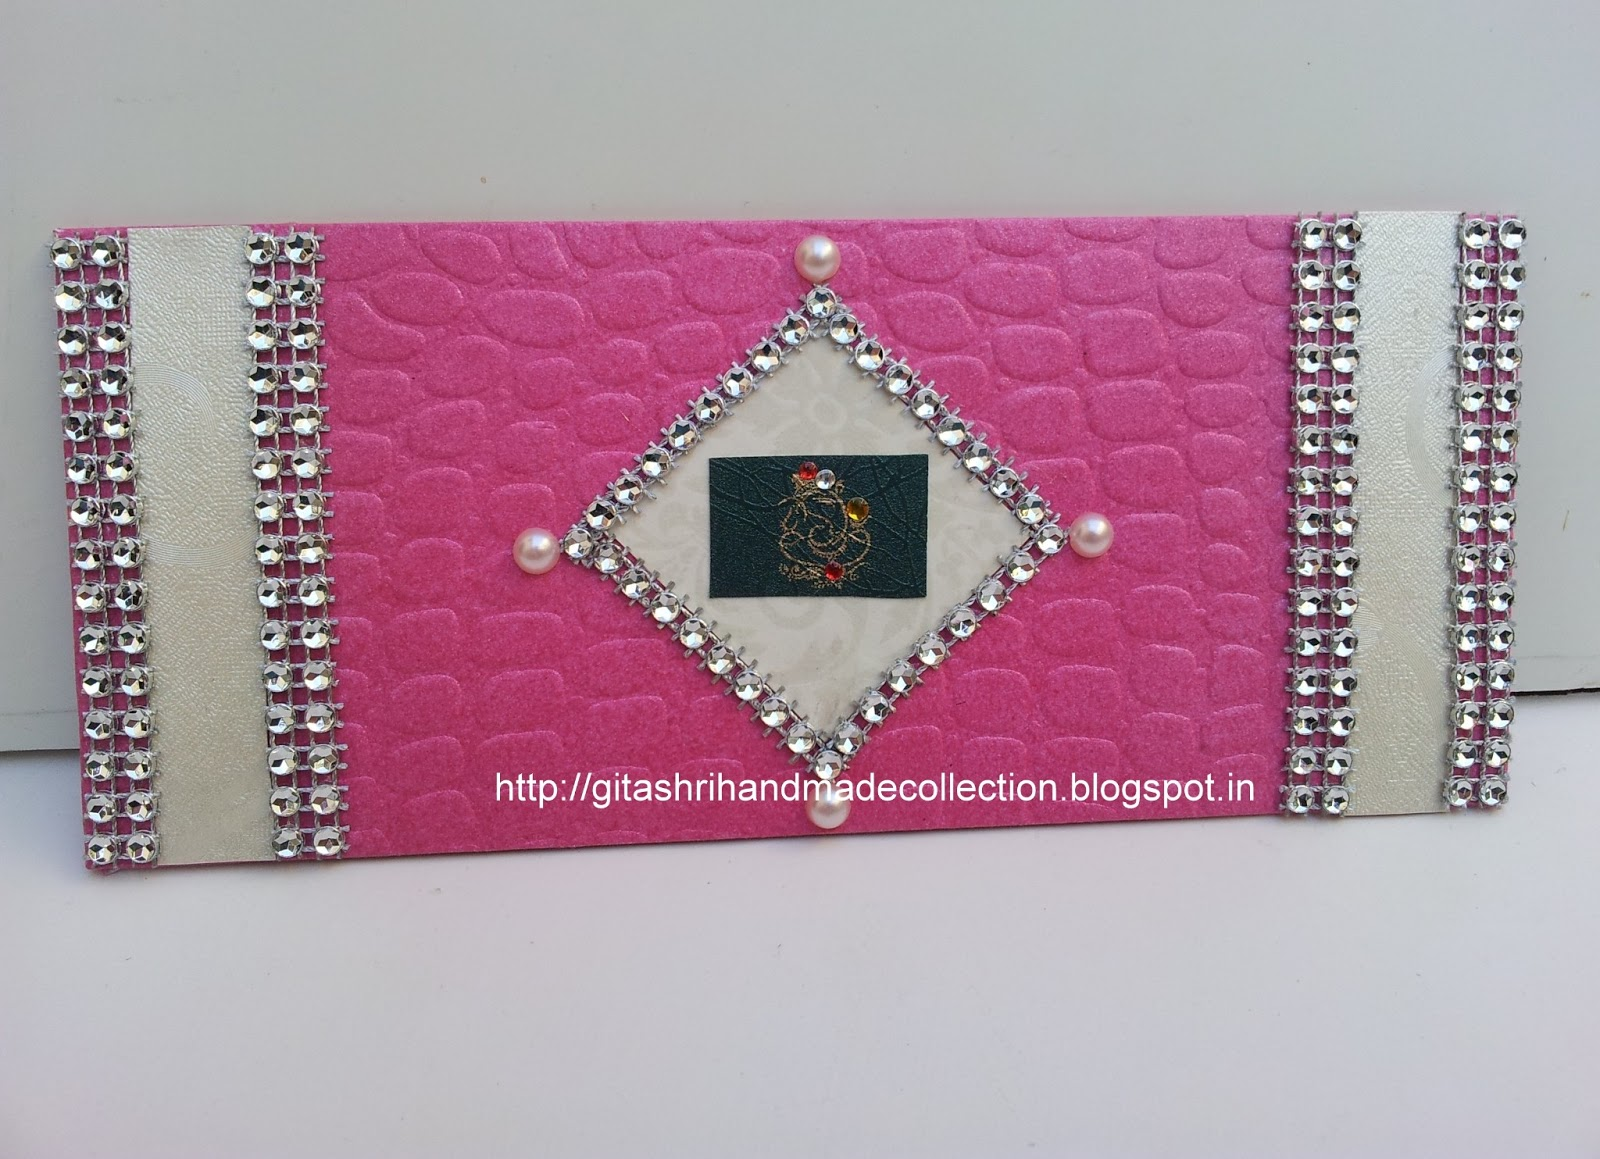 Designer Handmade Shagun Envelopes...!! | GitaShri Handmade Collection